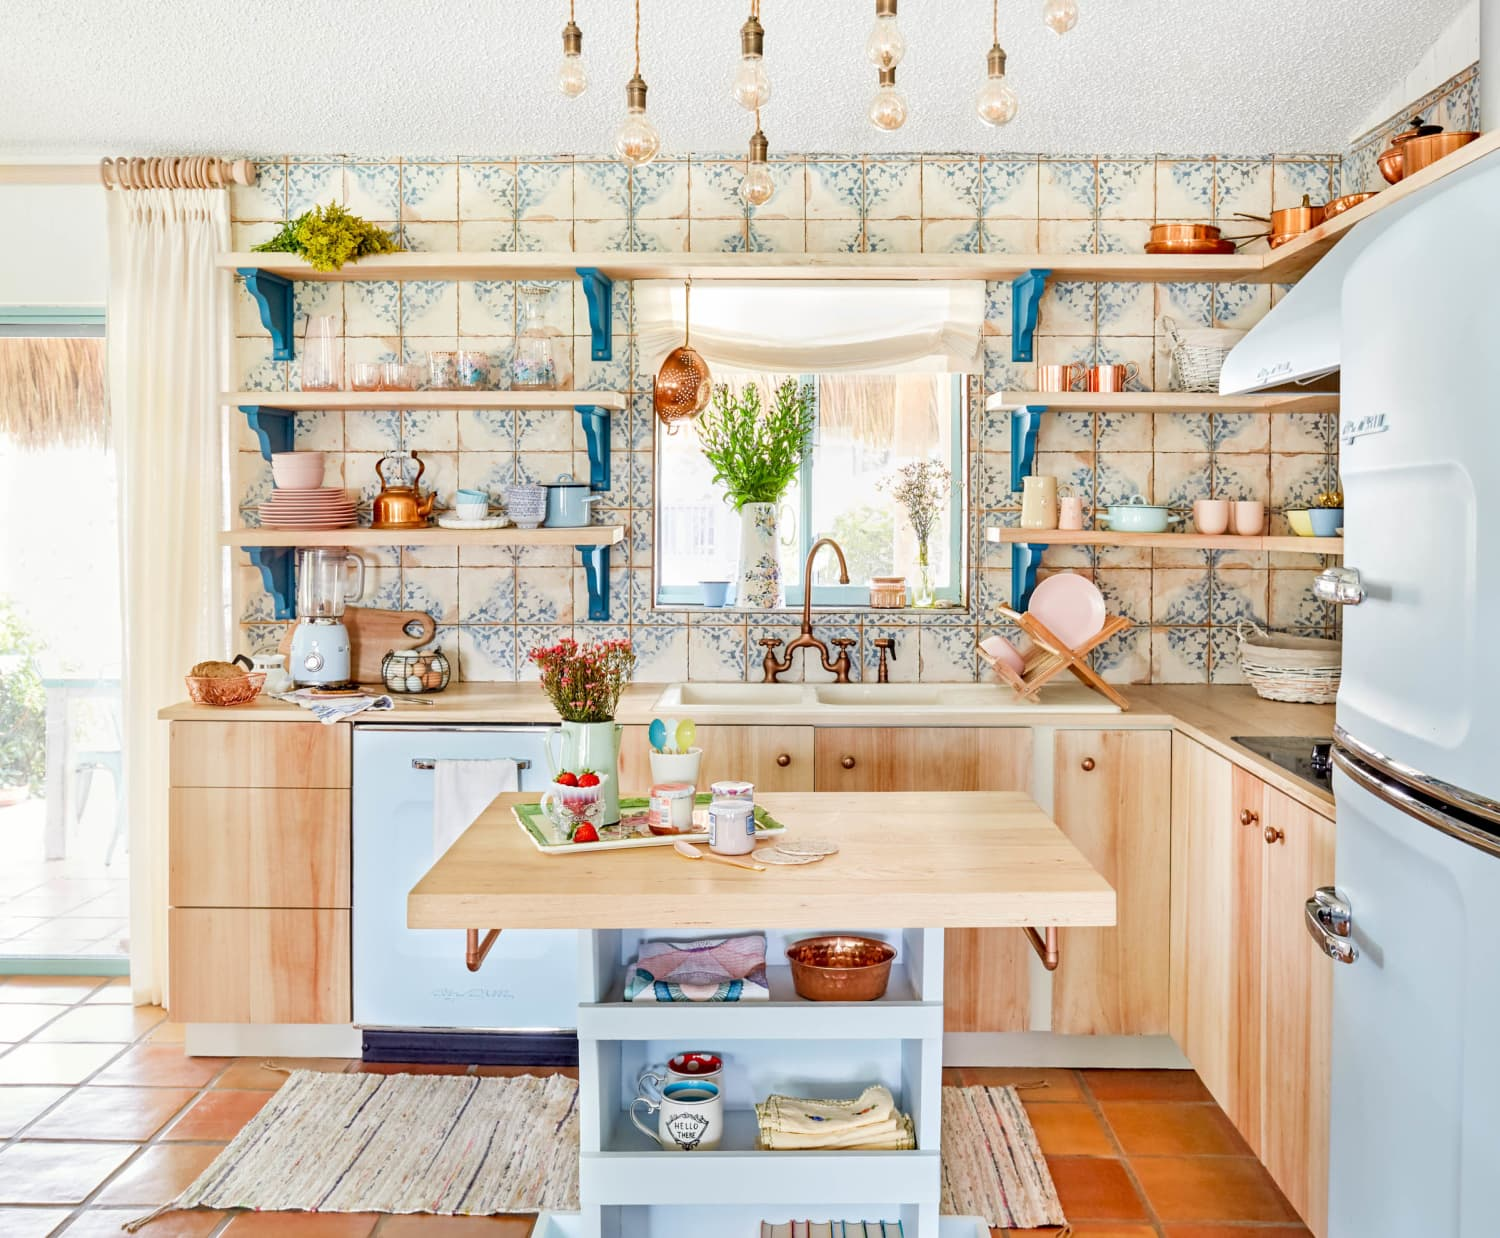 12 country kitchen ideas - how to give a rustic style to